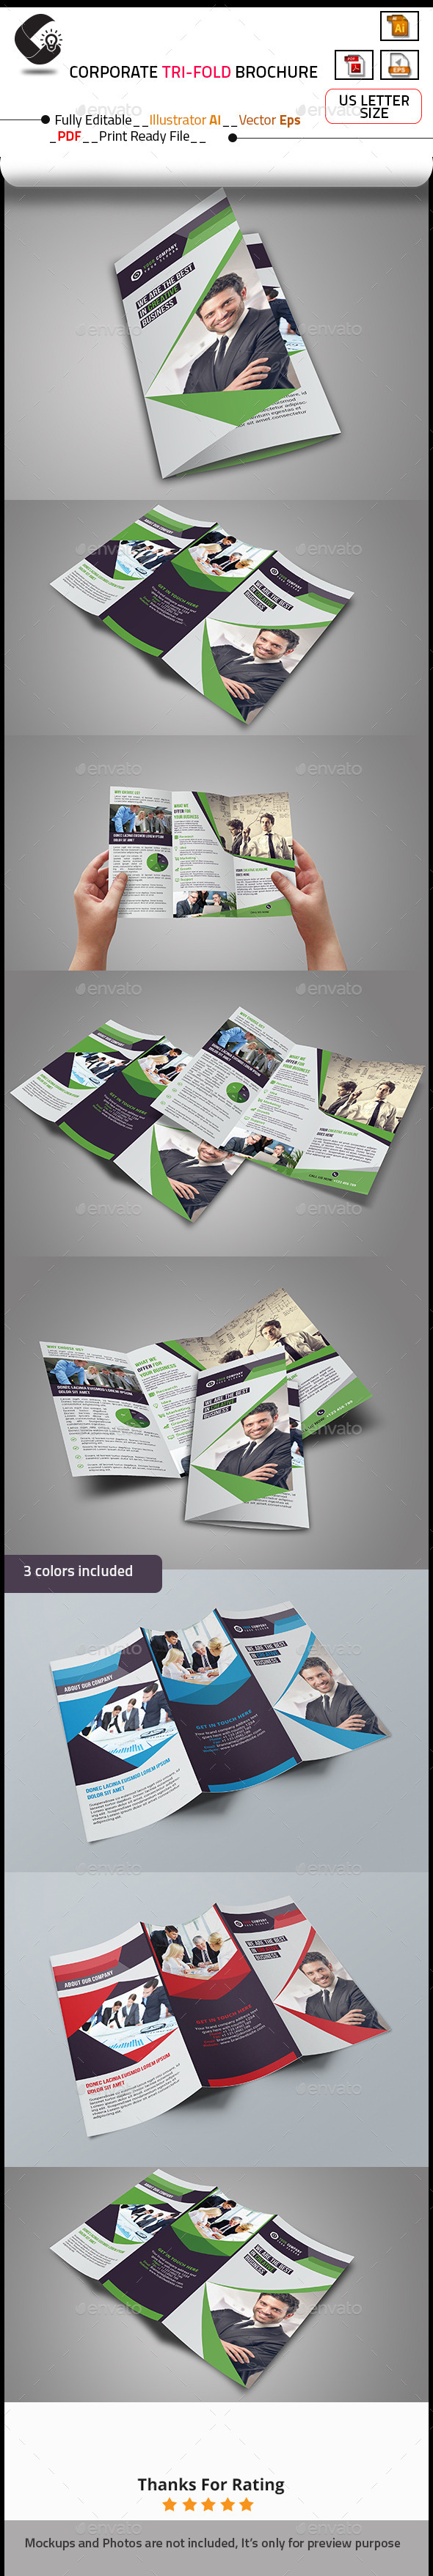 GraphicRiver Corporate Marketing Tri-Fold Brochure 10646223